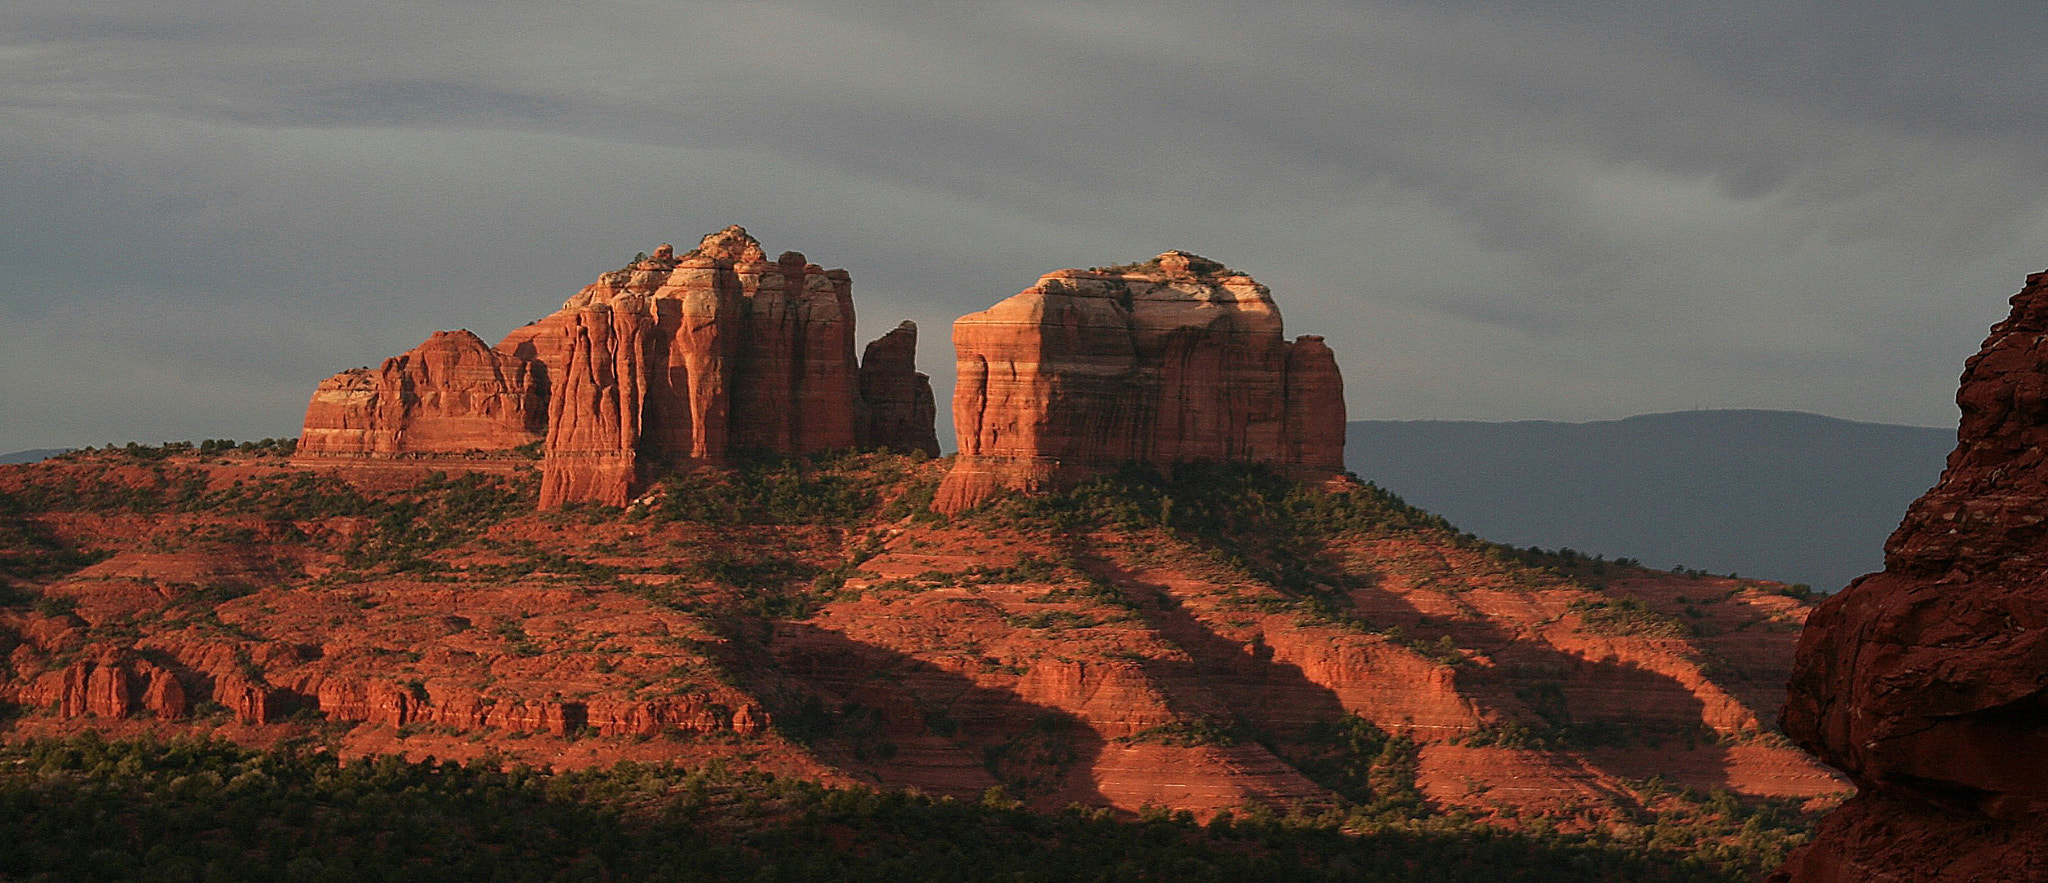 Photograph Sedona by Gerry Dempsey on 500px